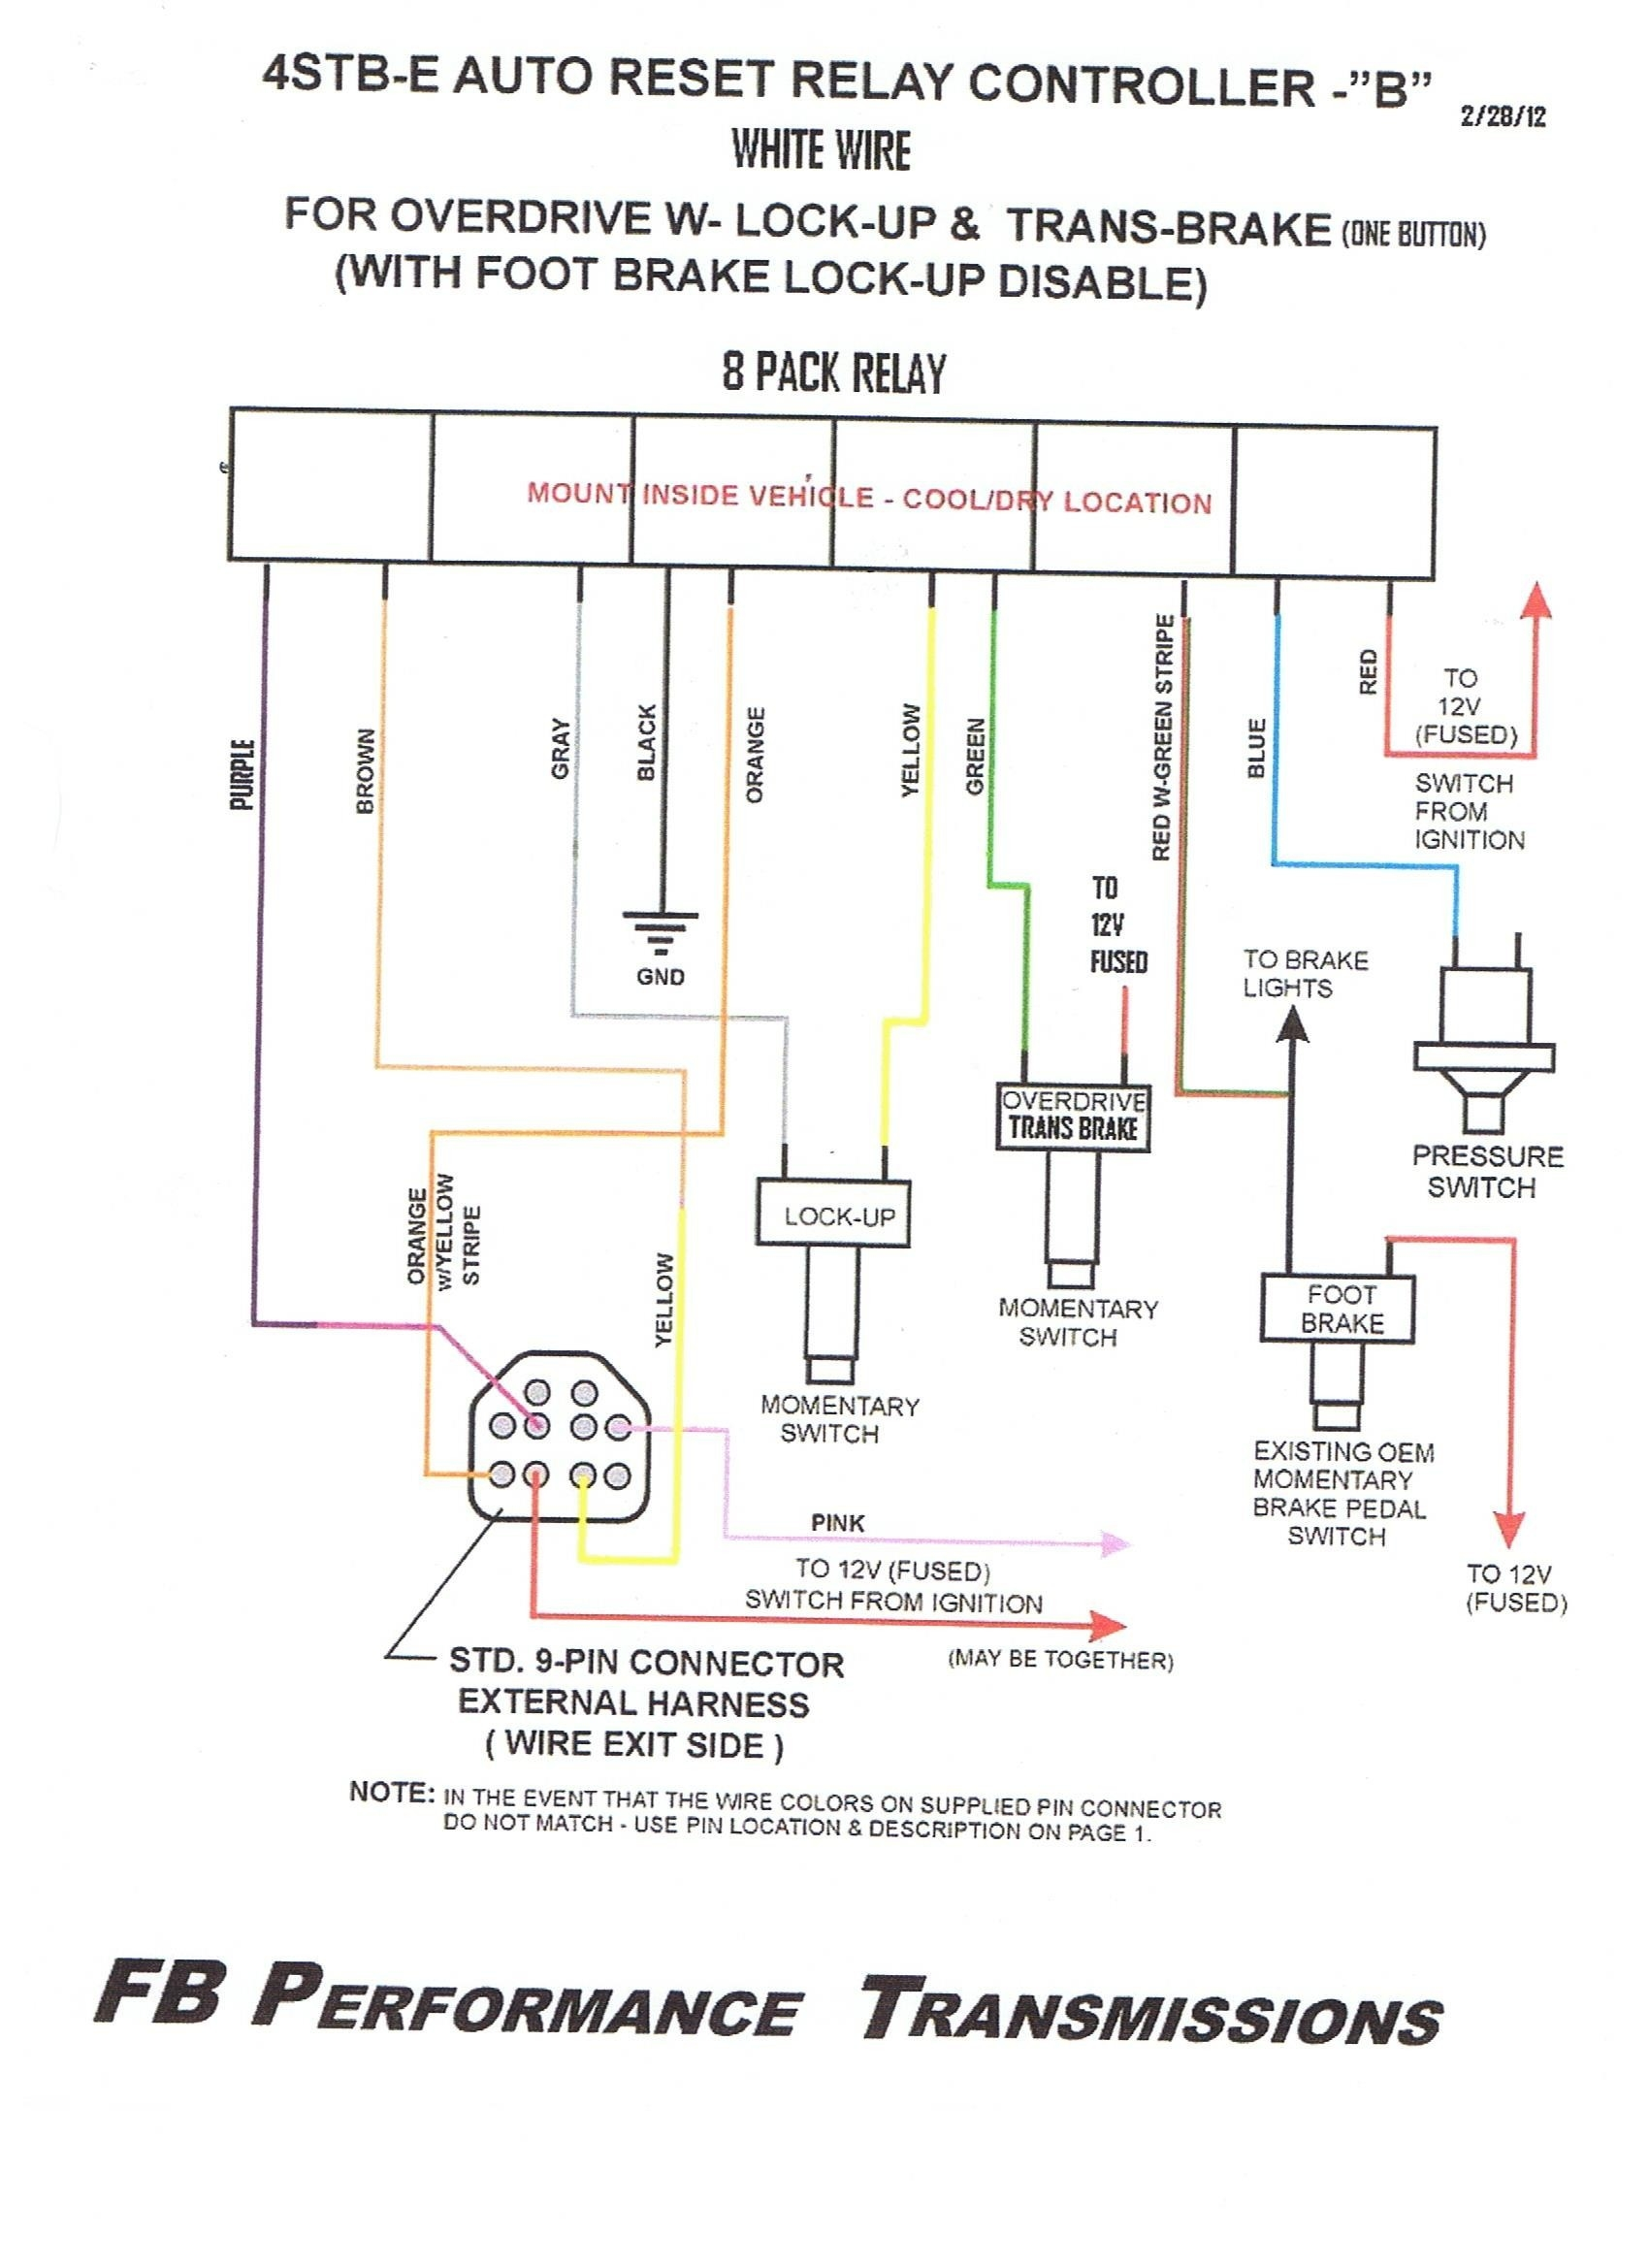 emergency push button wiring diagram Collection-Emergency Stop Push button Wiring Diagram Save Wiring Diagram Relay Switch Save Wiring Diagram for Emergency 12-l